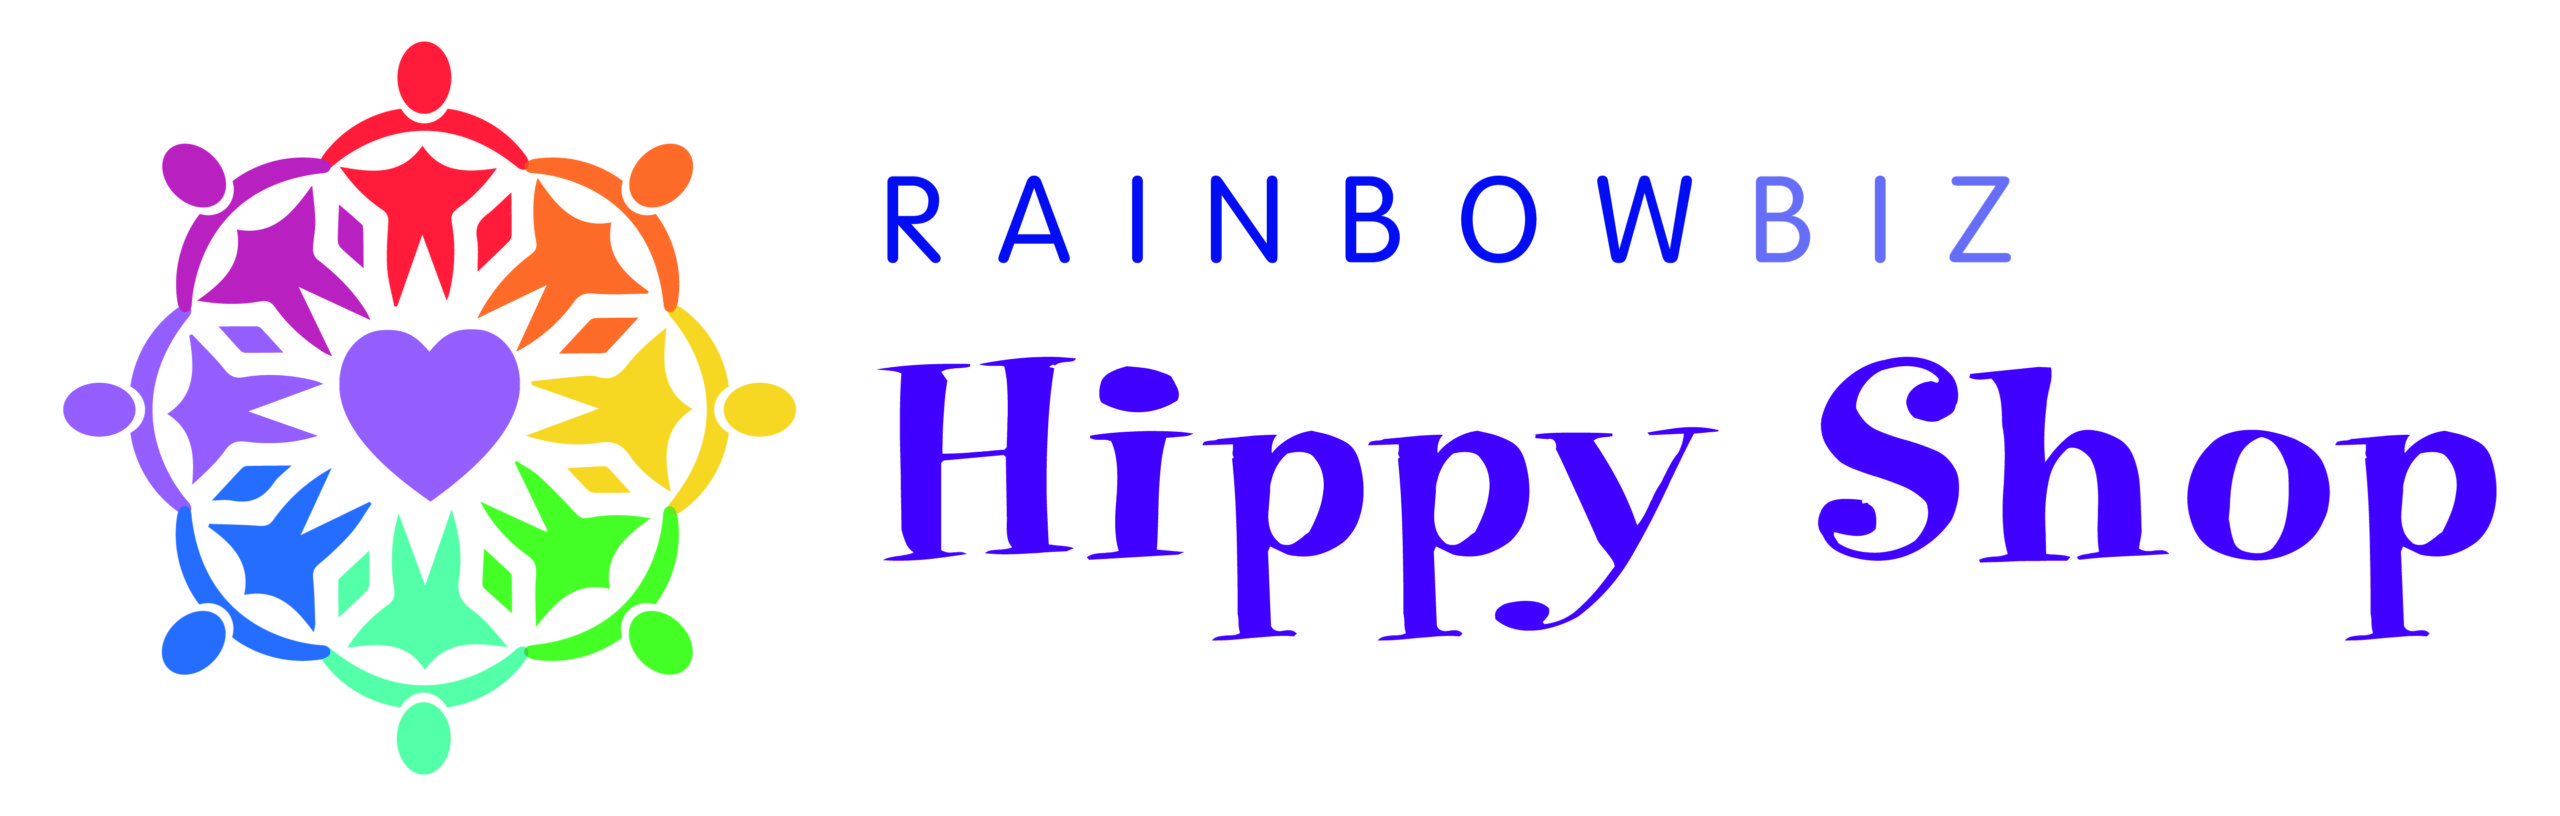 RainbowBiz Hippy Shop